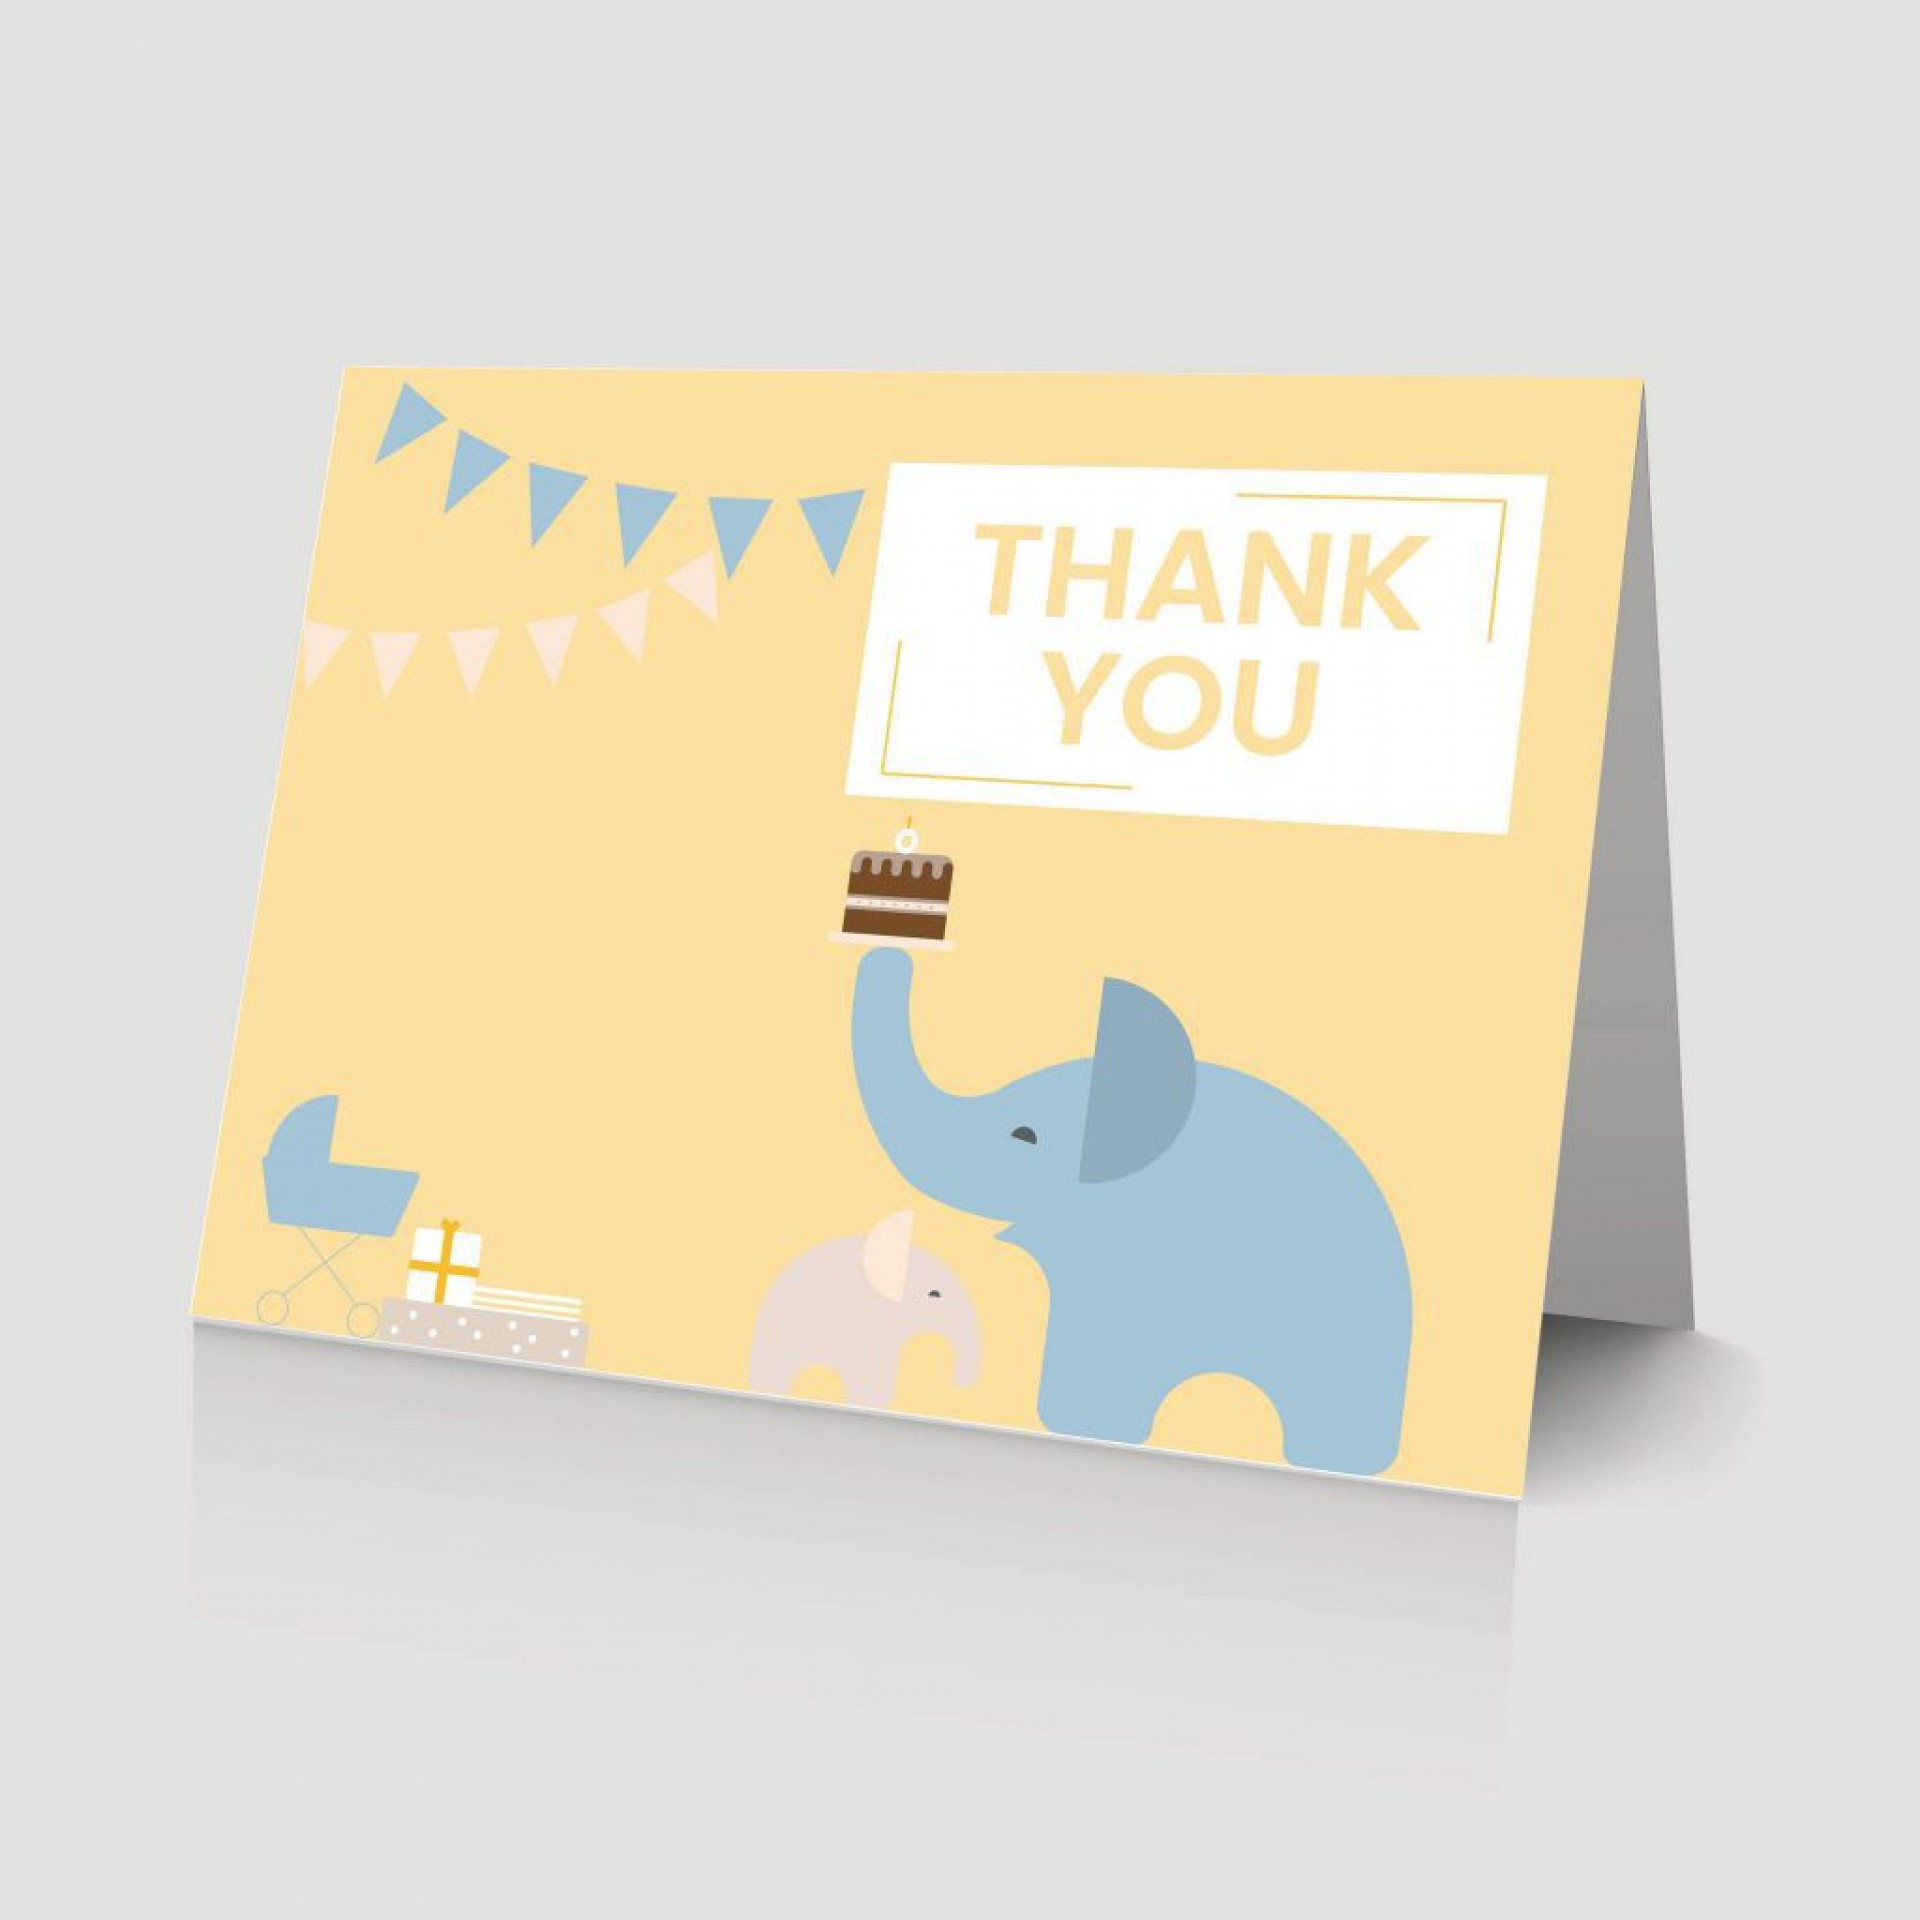 008 Surprising Thank You Card Wording For Baby Shower Group Gift Photo 1920